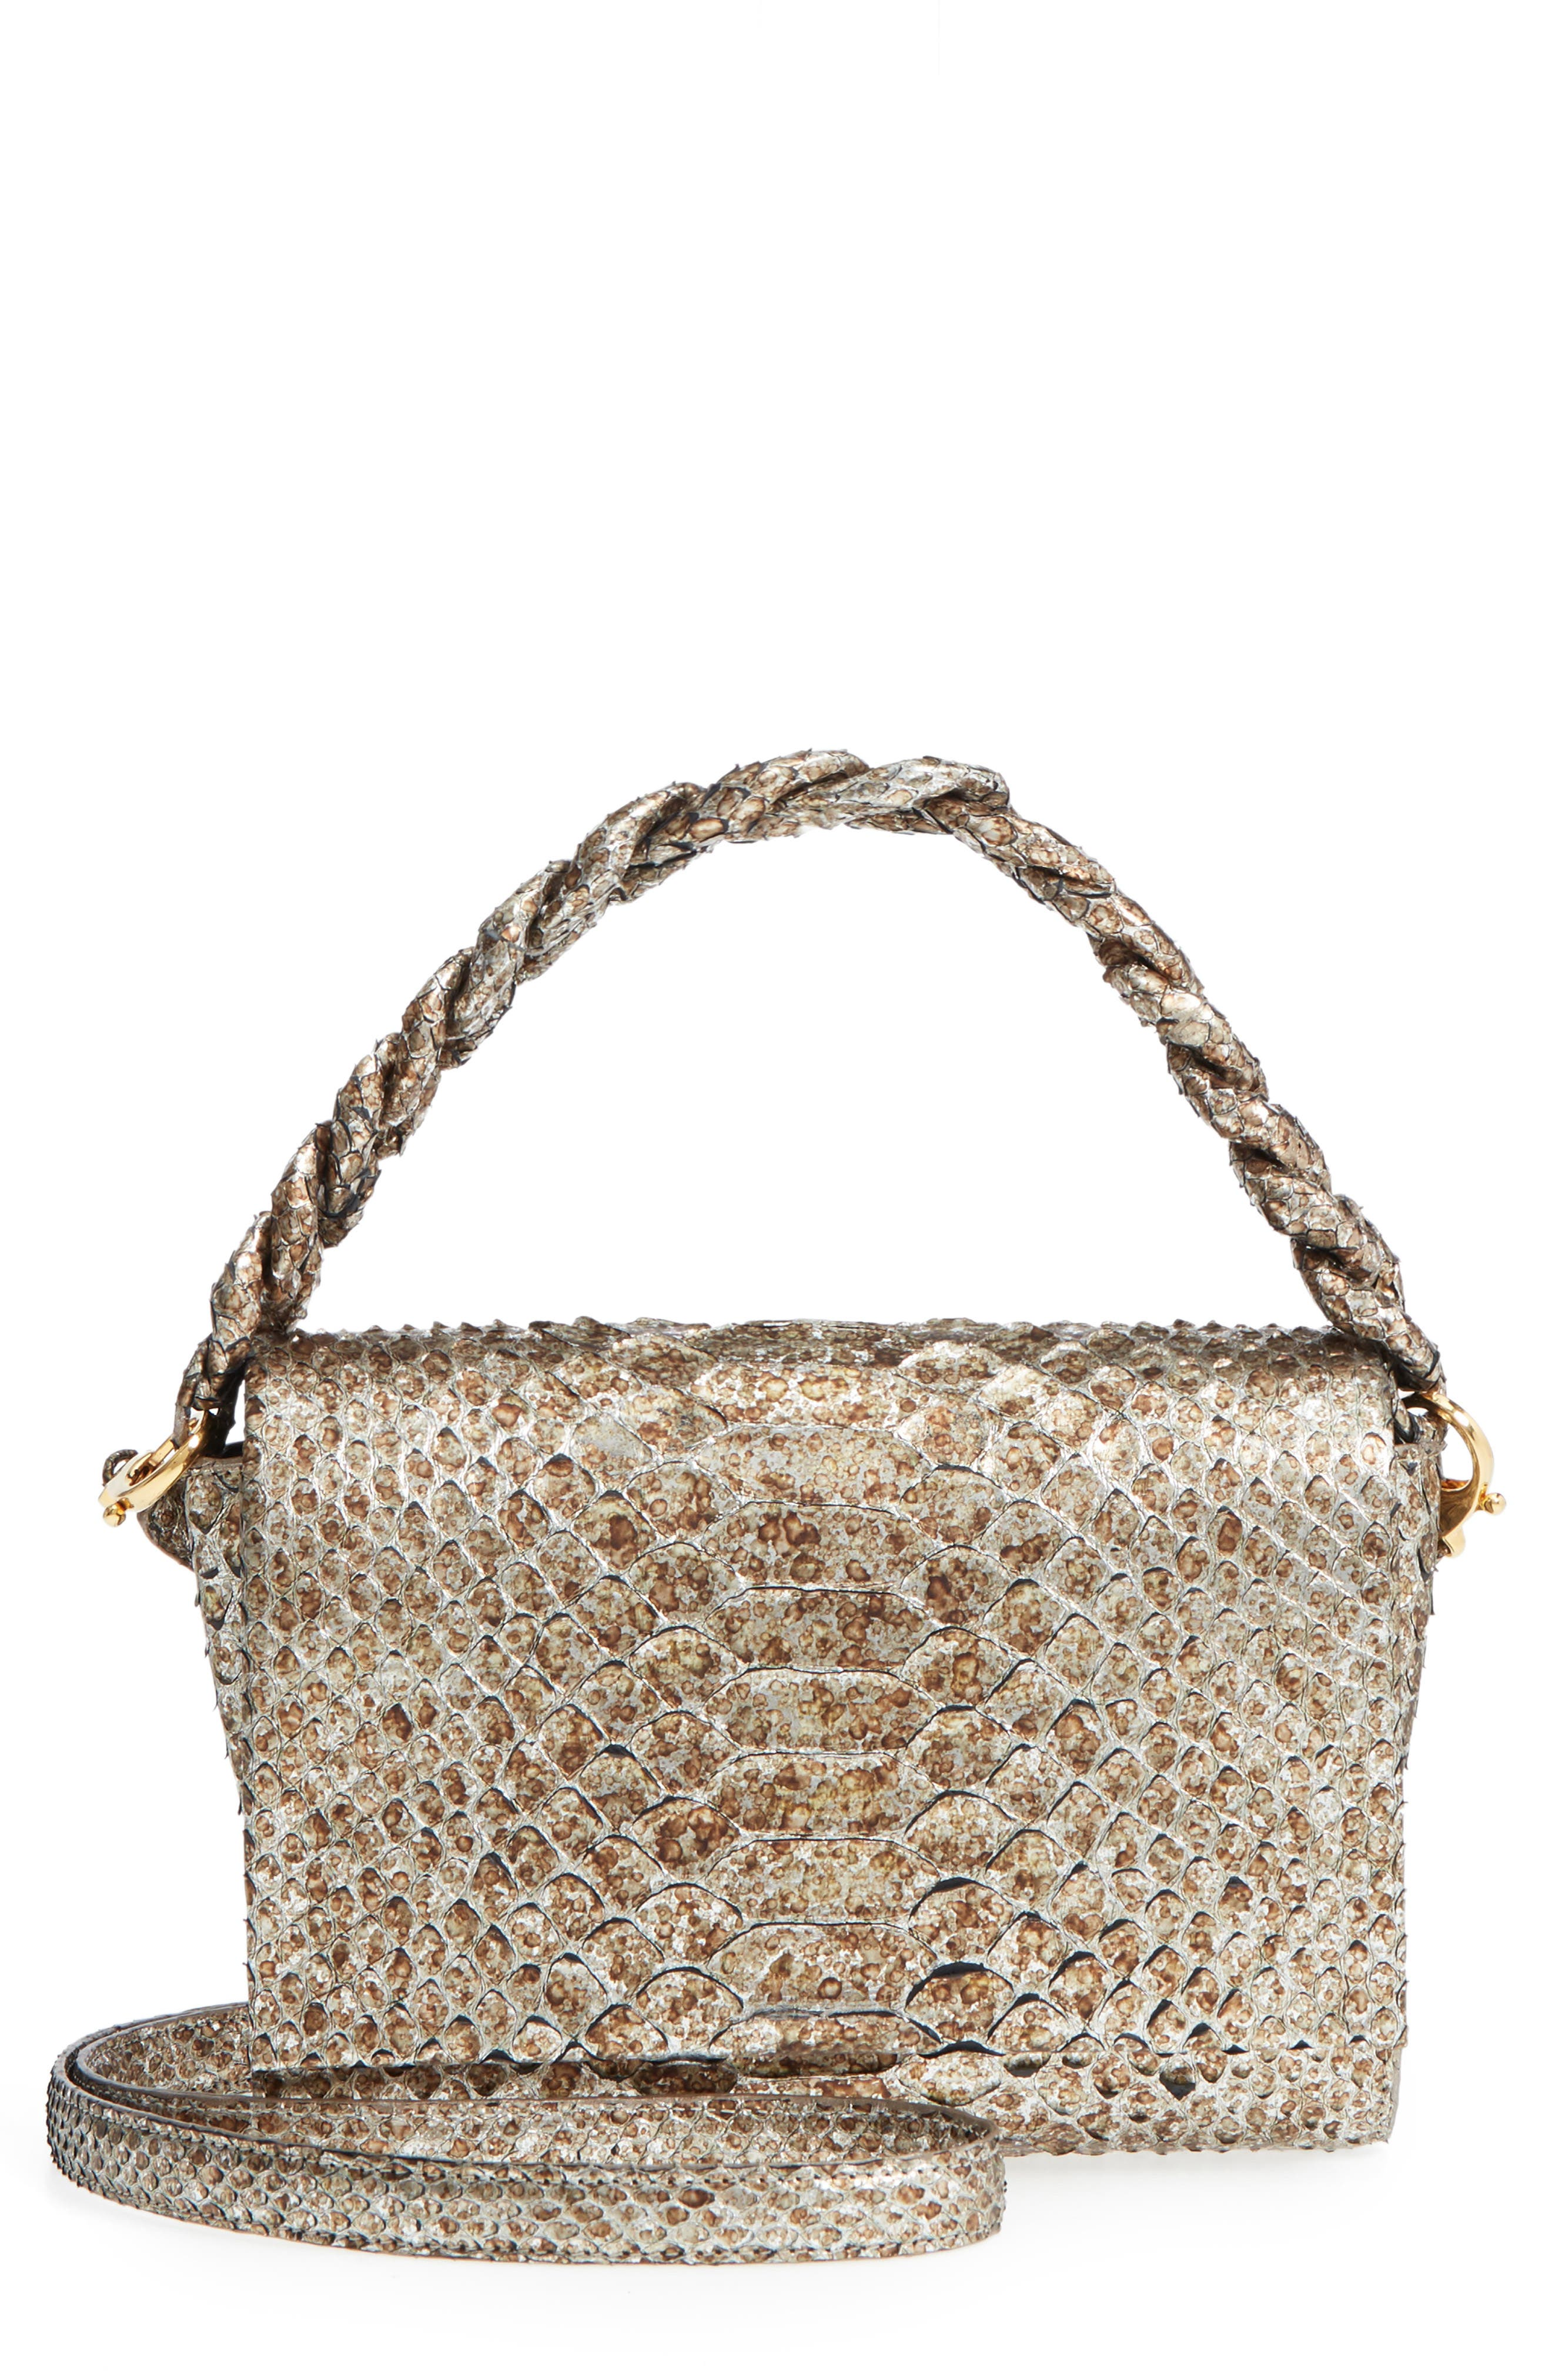 Small Carrie Genuine Crocodile Metallic Clutch,                         Main,                         color, Metallic Gold